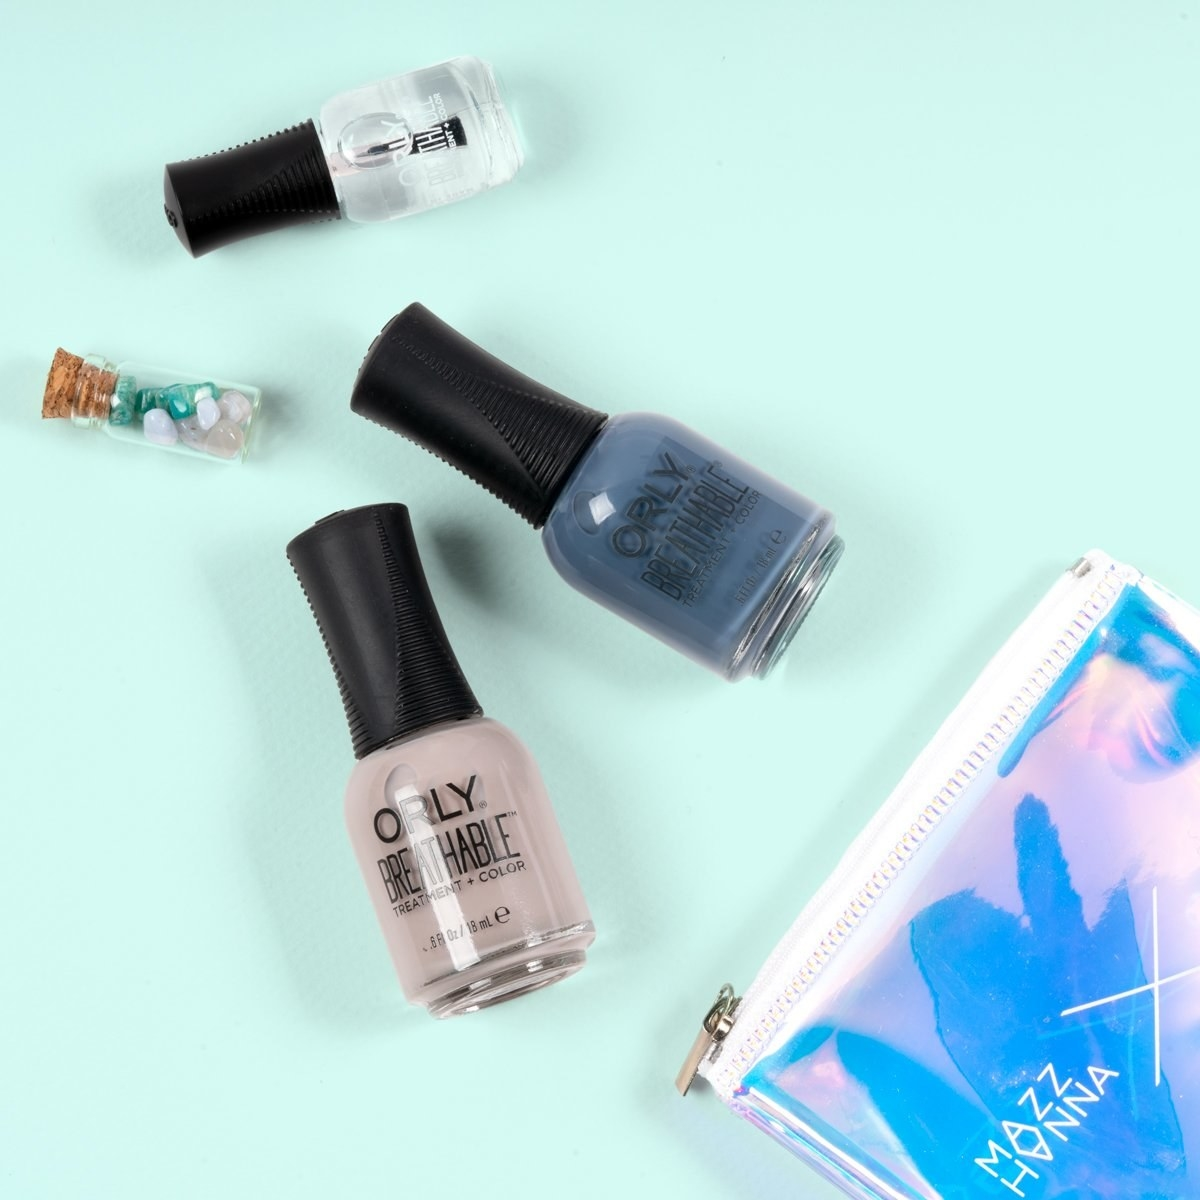 the small vial of crystals, two polishes, and a bottle of nail treatment